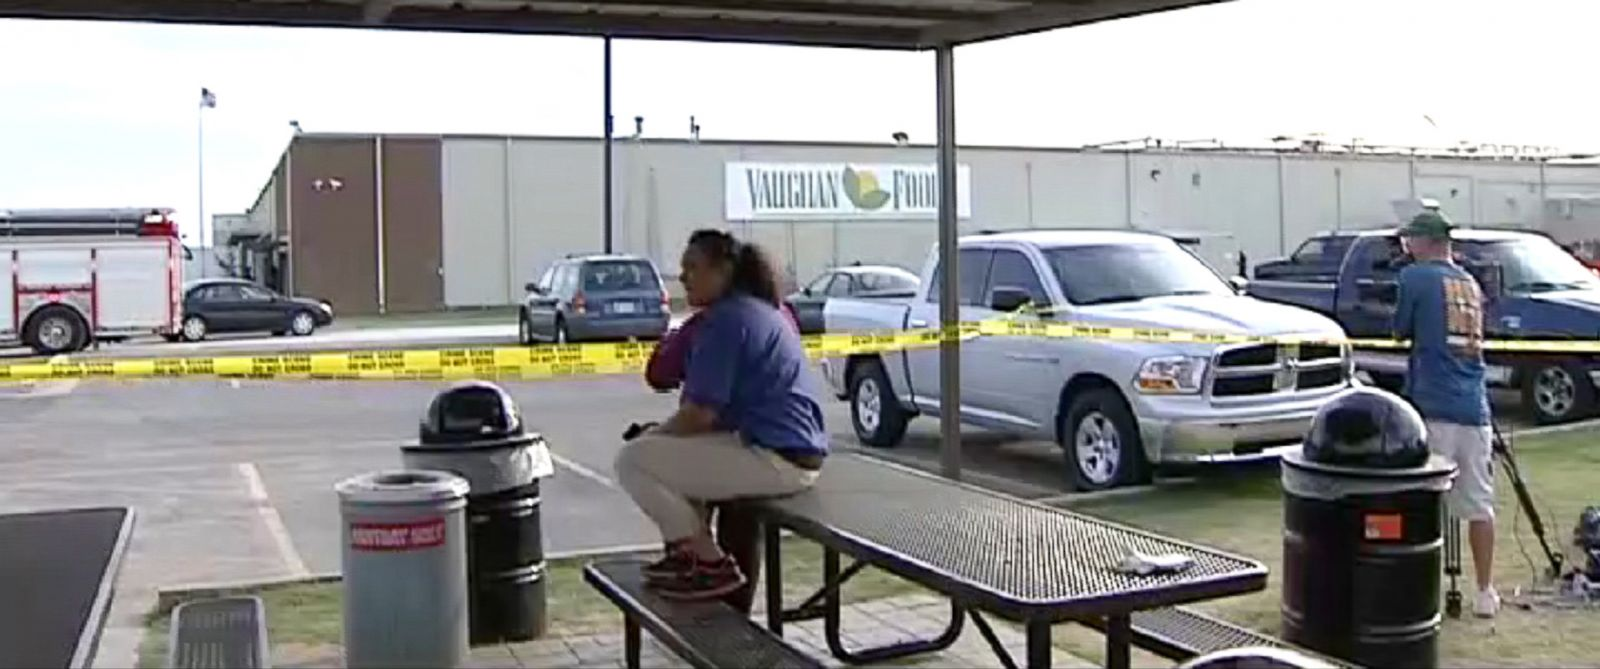 PHOTO: People wait outside of Vaughan Foods in Moore, Okla. where a woman was stabbed to death on Sept 25, 2014.